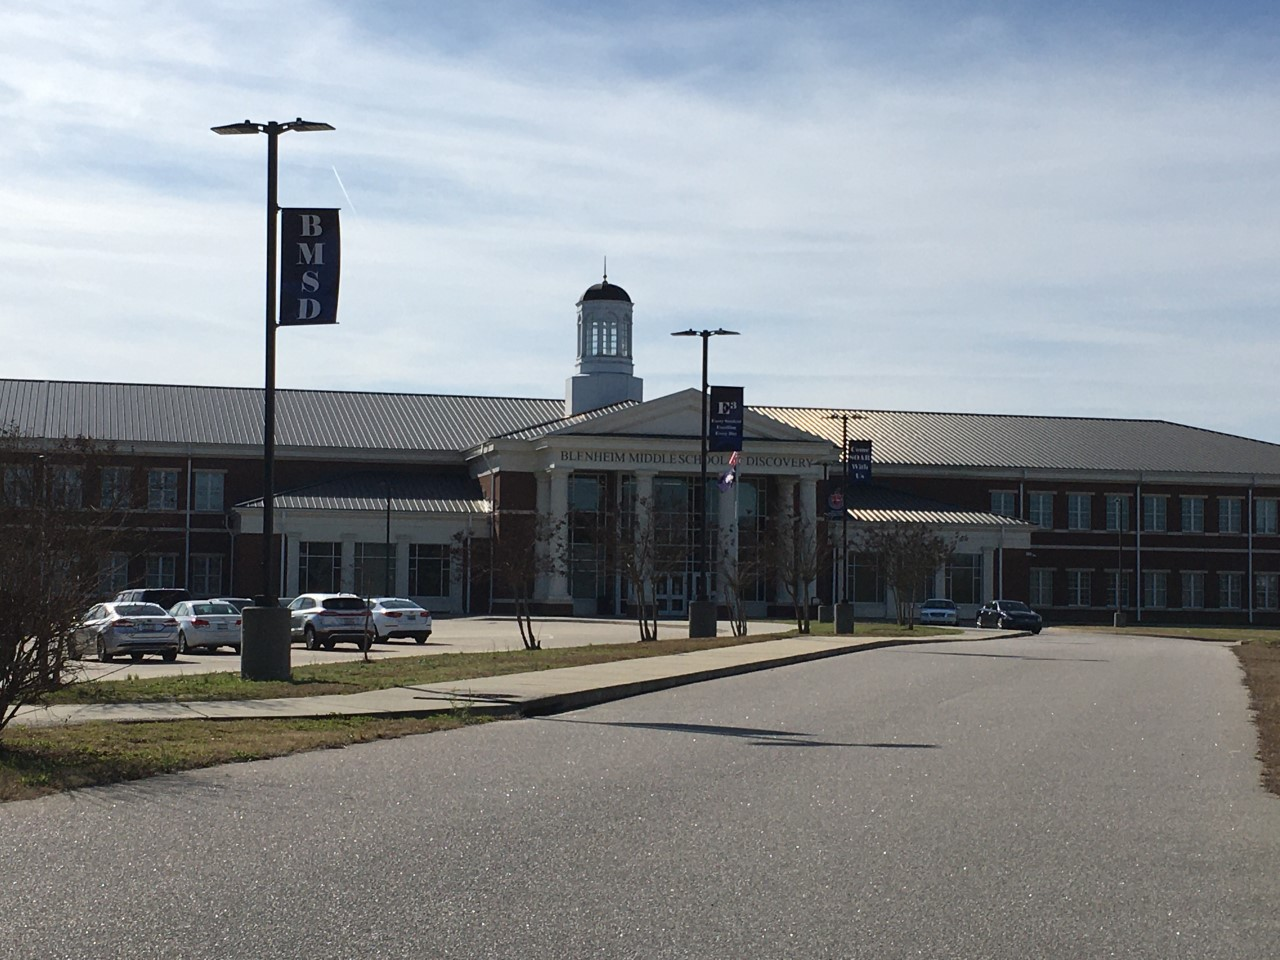 Blenheim Middle School of Discovery